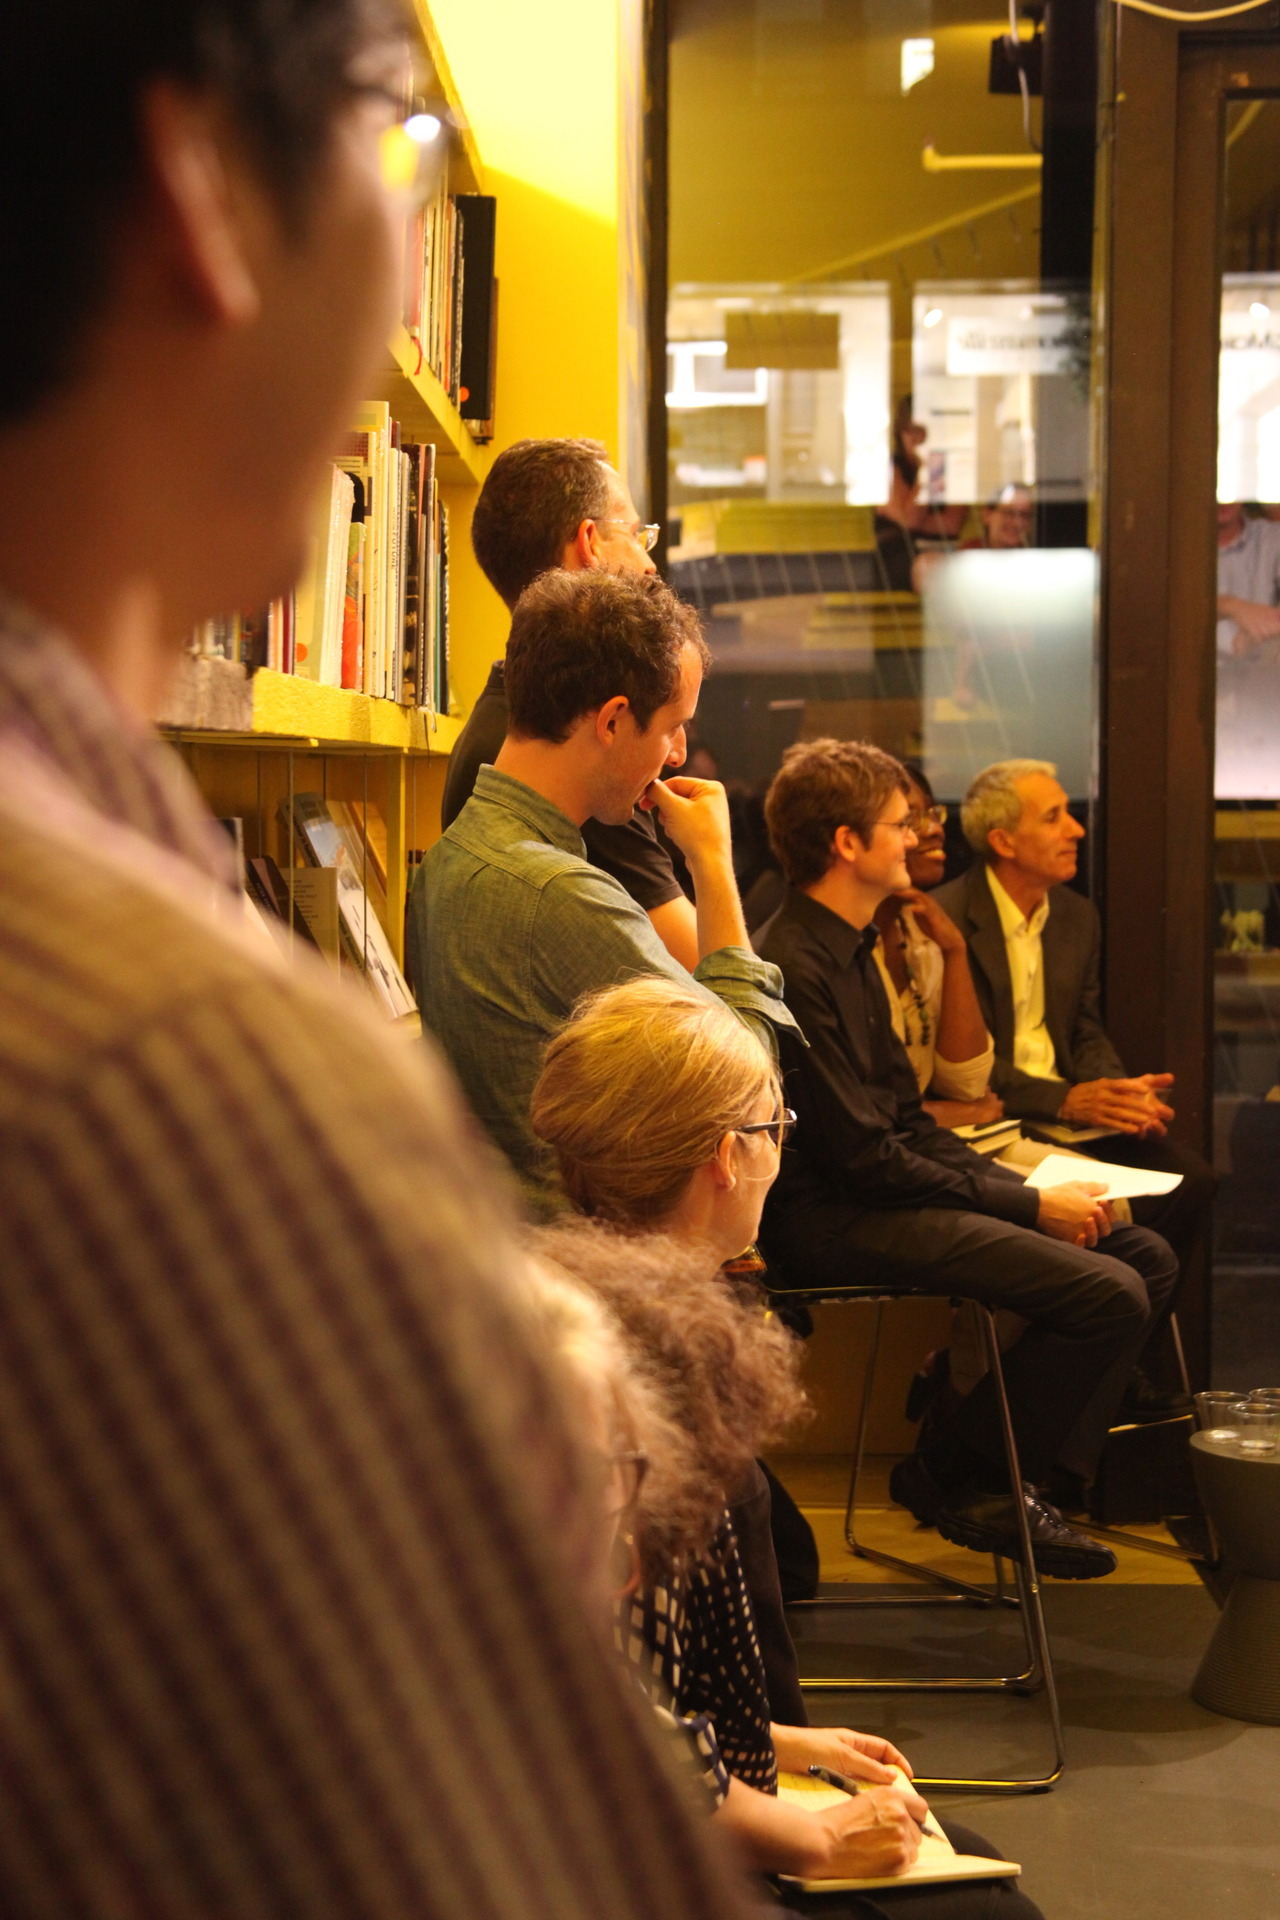 A new season of events at the bookstore kicked off last night with a panel discussion on Design After Decline, a book about how America's two largest shrinking cities—Detroit and Philadelphia—can use innovative design and planning to shape a brighter future for shrinking cities and their residents. We were lucky to have author Brent D. Ryan joined in conversation by Toni Griffin and Robert A. Beauregard.